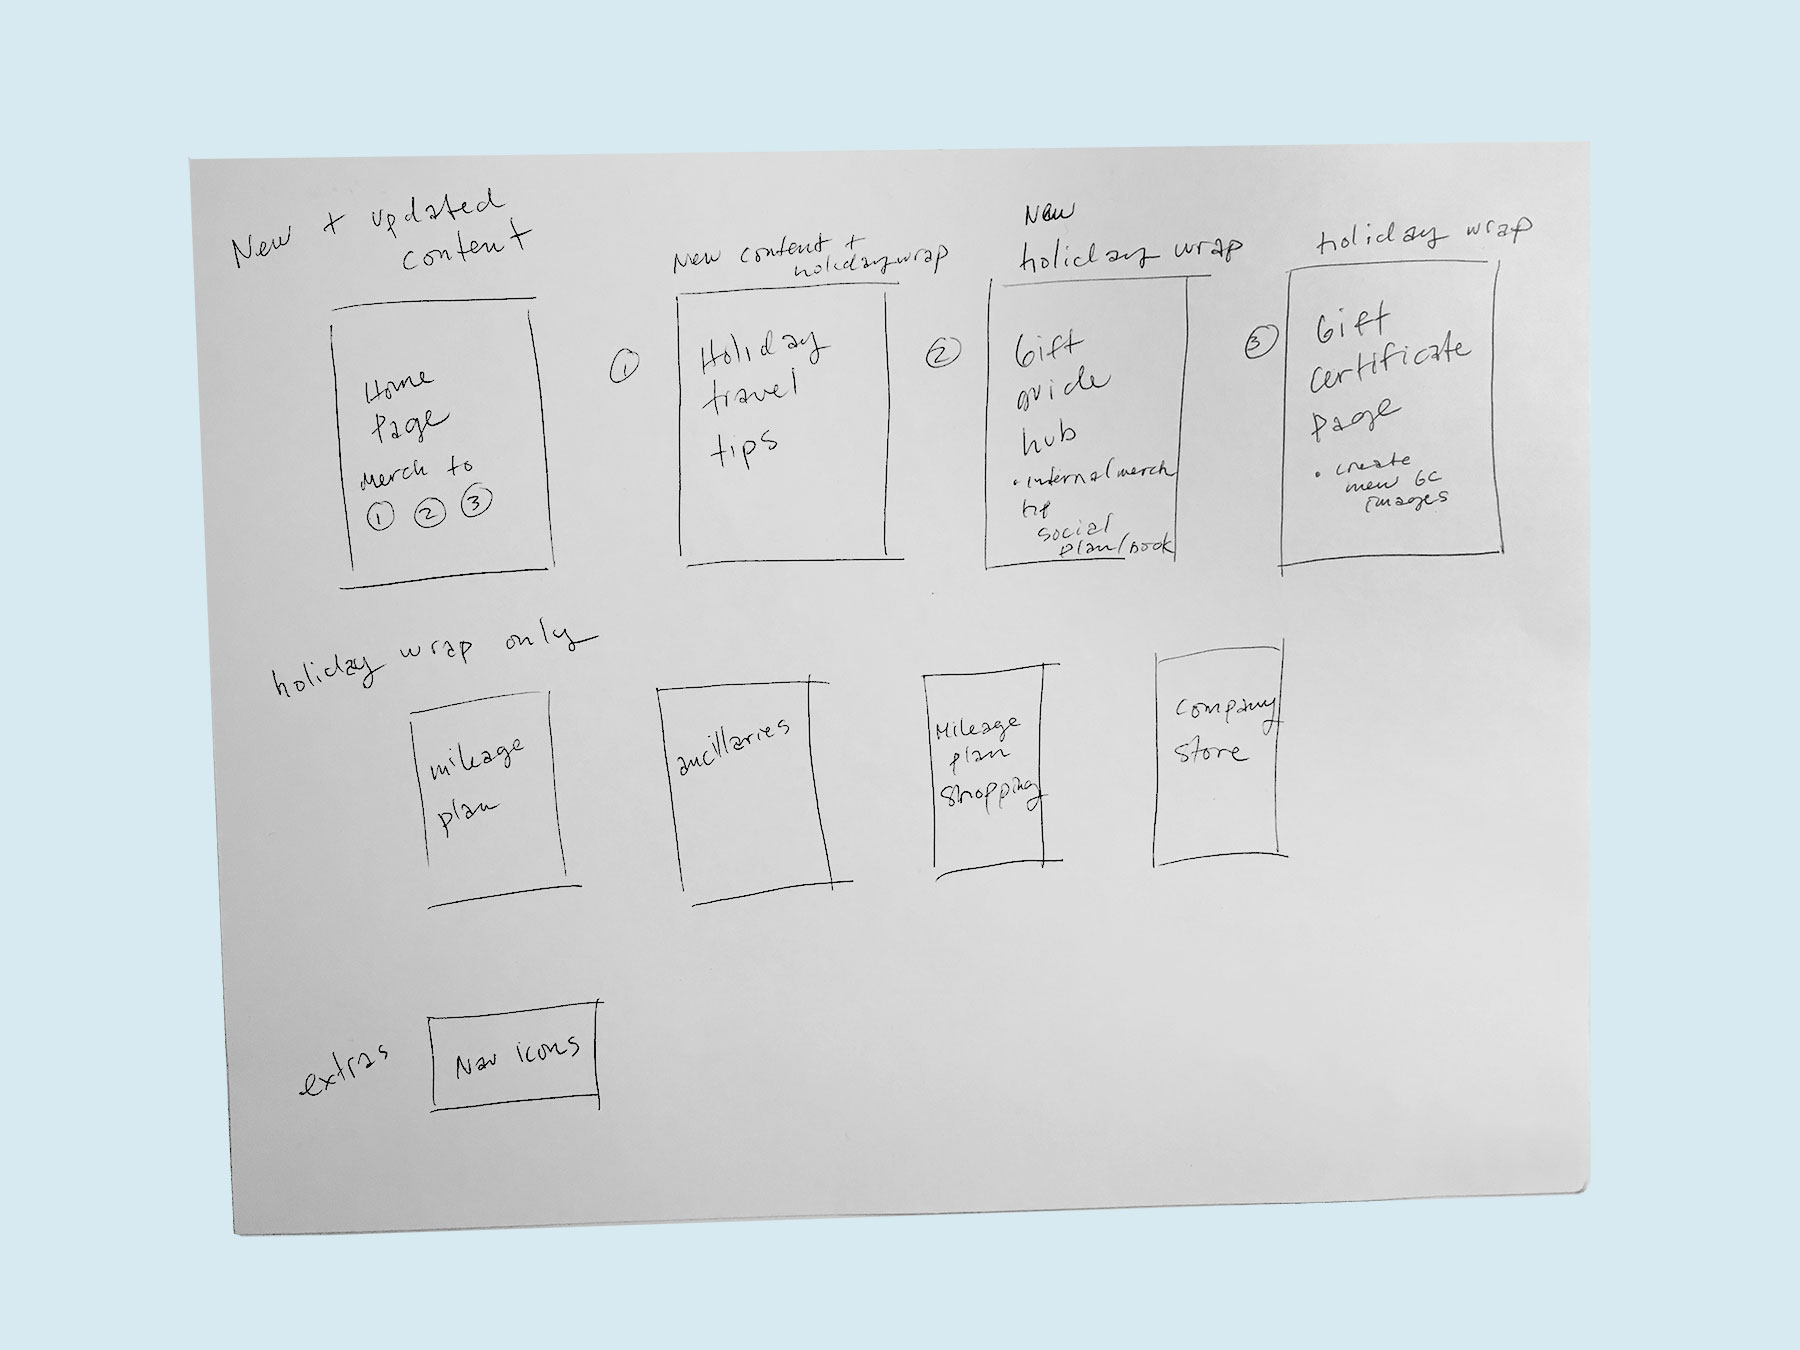 Sketch of existing and new pages to be included in campaign